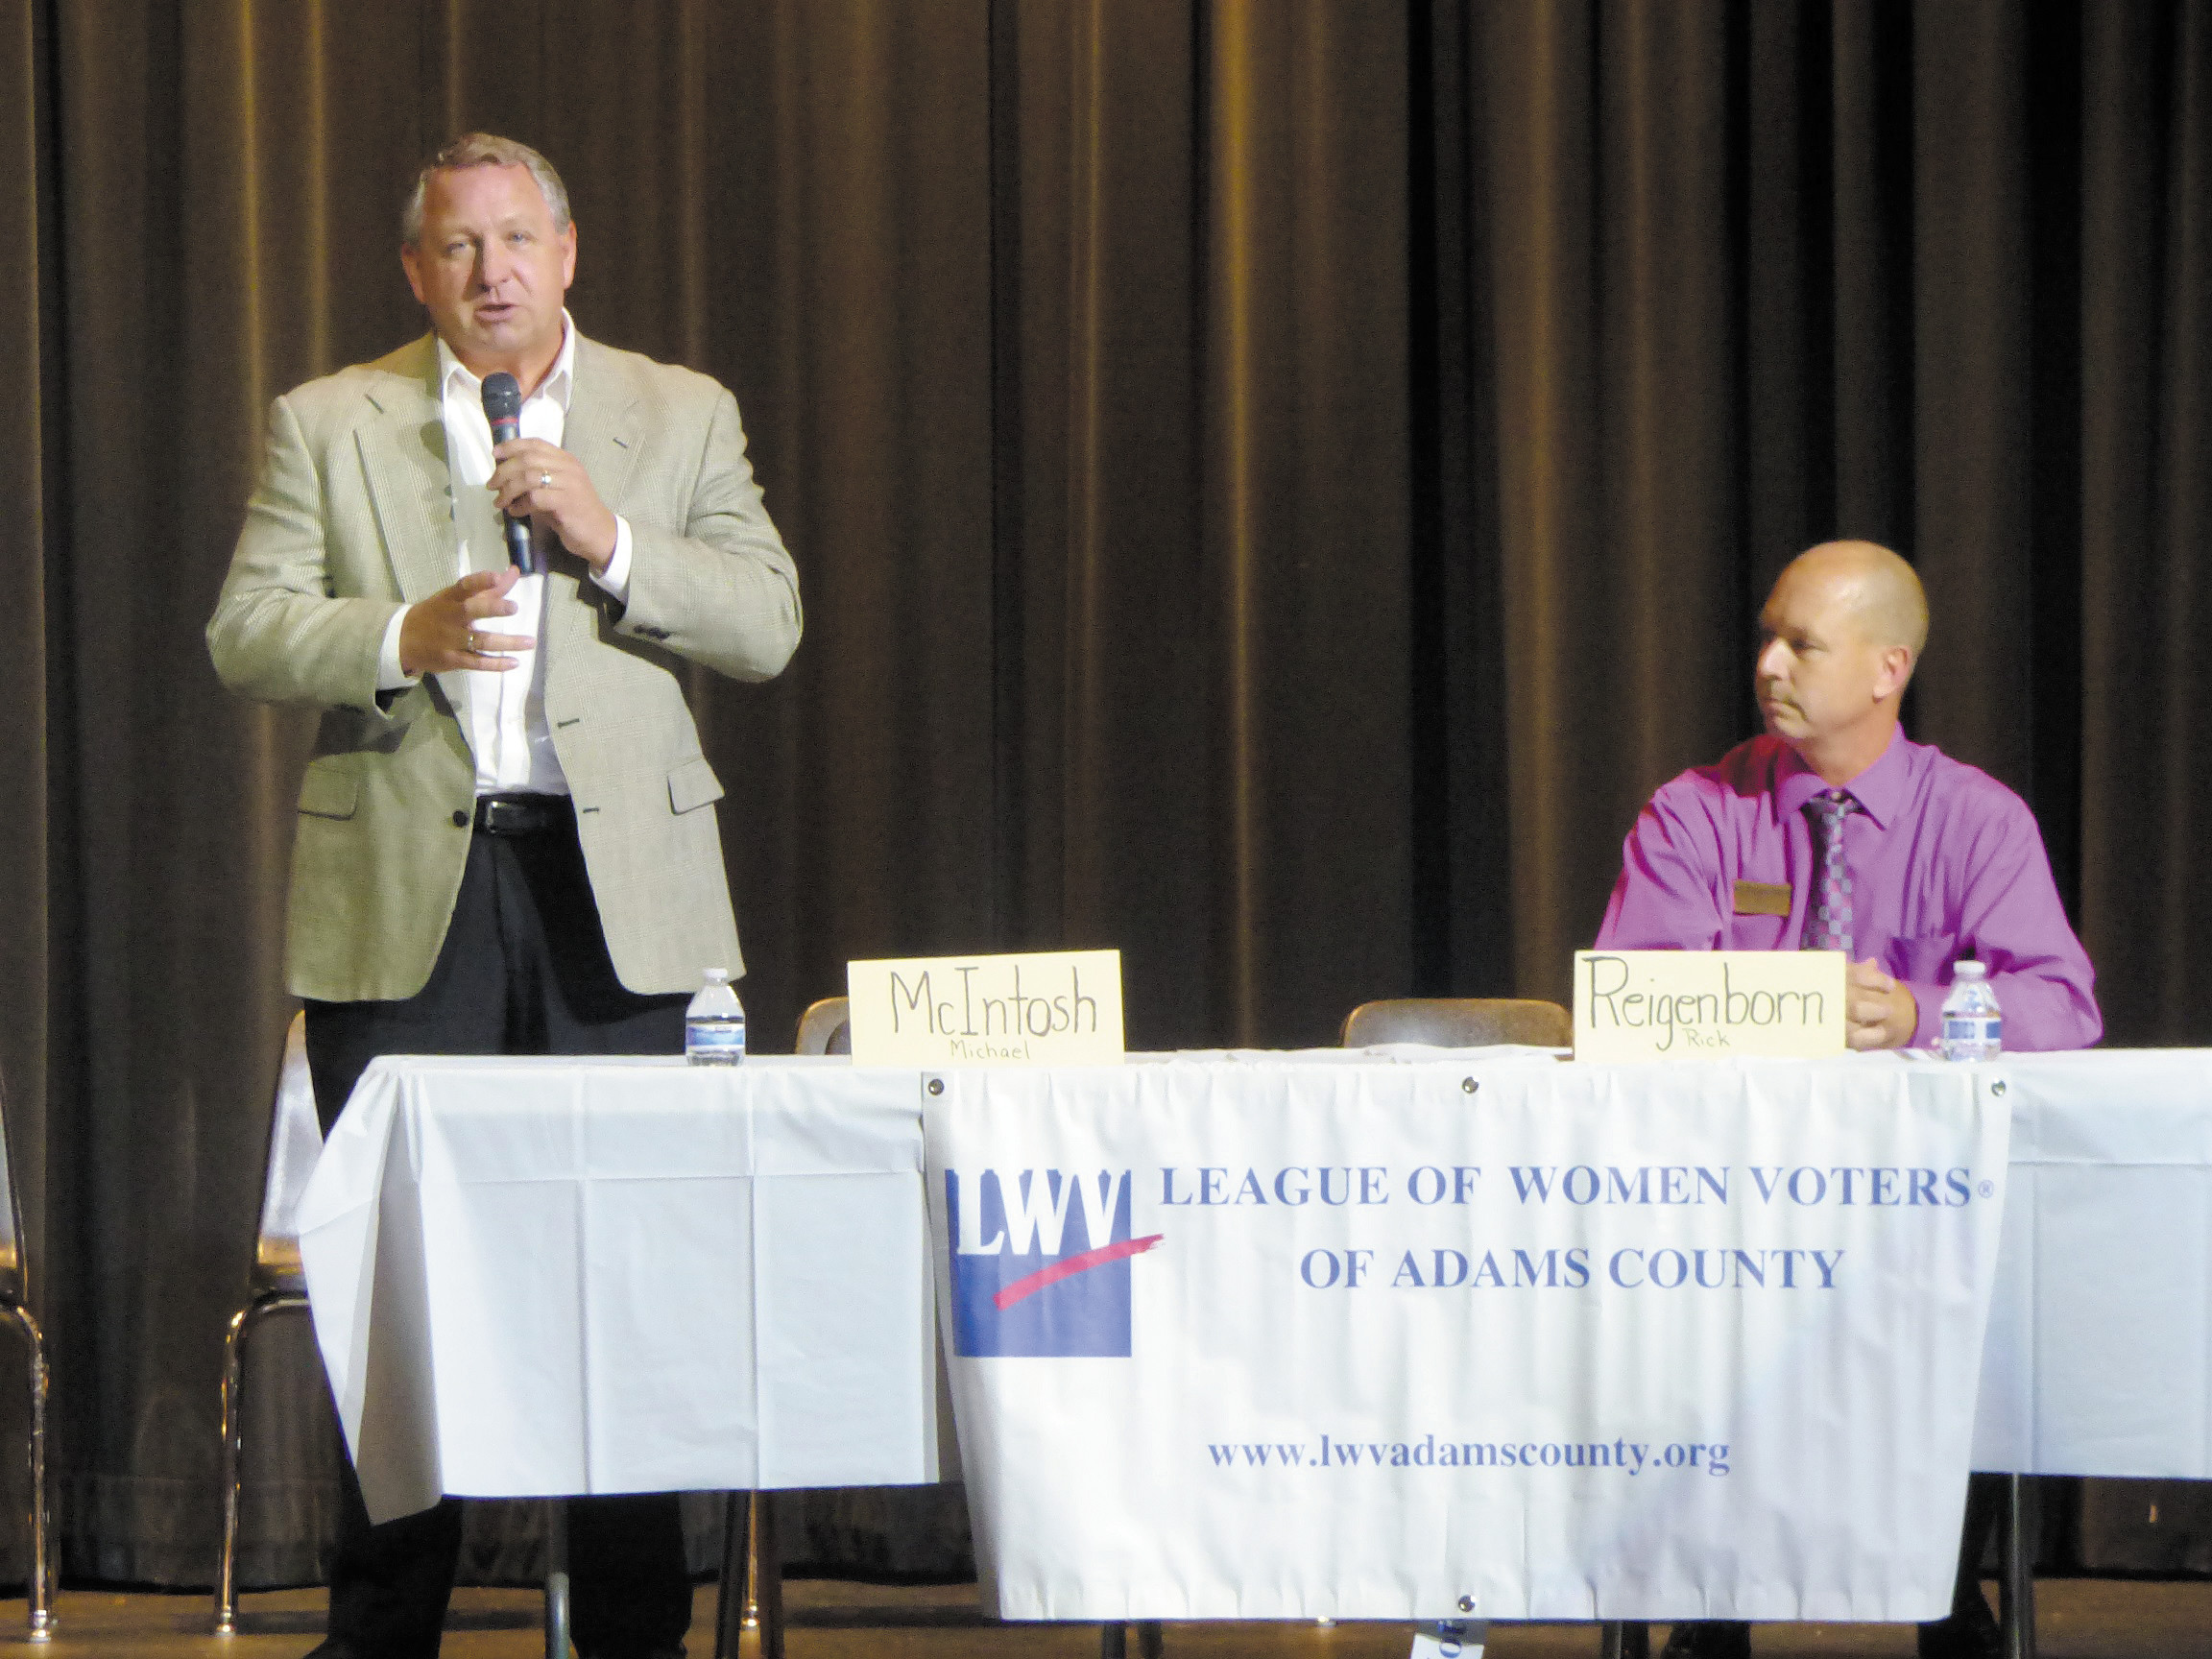 Republican candidate Mike McIntosh and Democratic candidate Rick Reigenborn faced off Sept. 30 during a County Candidate Meeting hosted by the League of Women Voters of Adams County at Skyview Campus in Thornton. ?Photo by Tammy Kranz